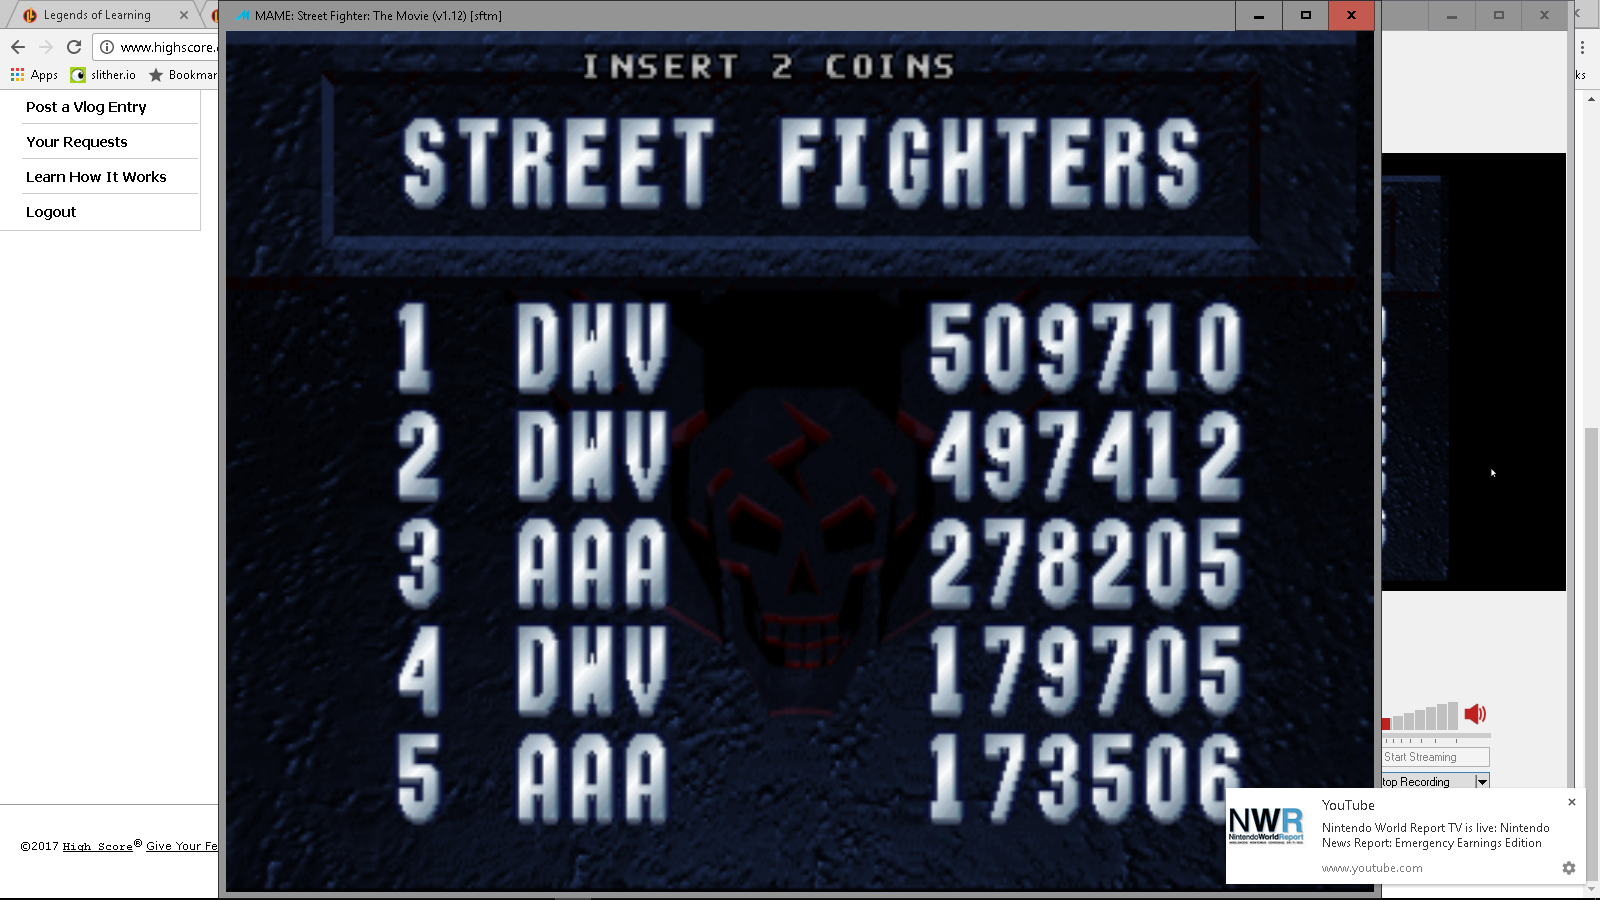 Street Fighter: The Movie [sftm] 497,412 points